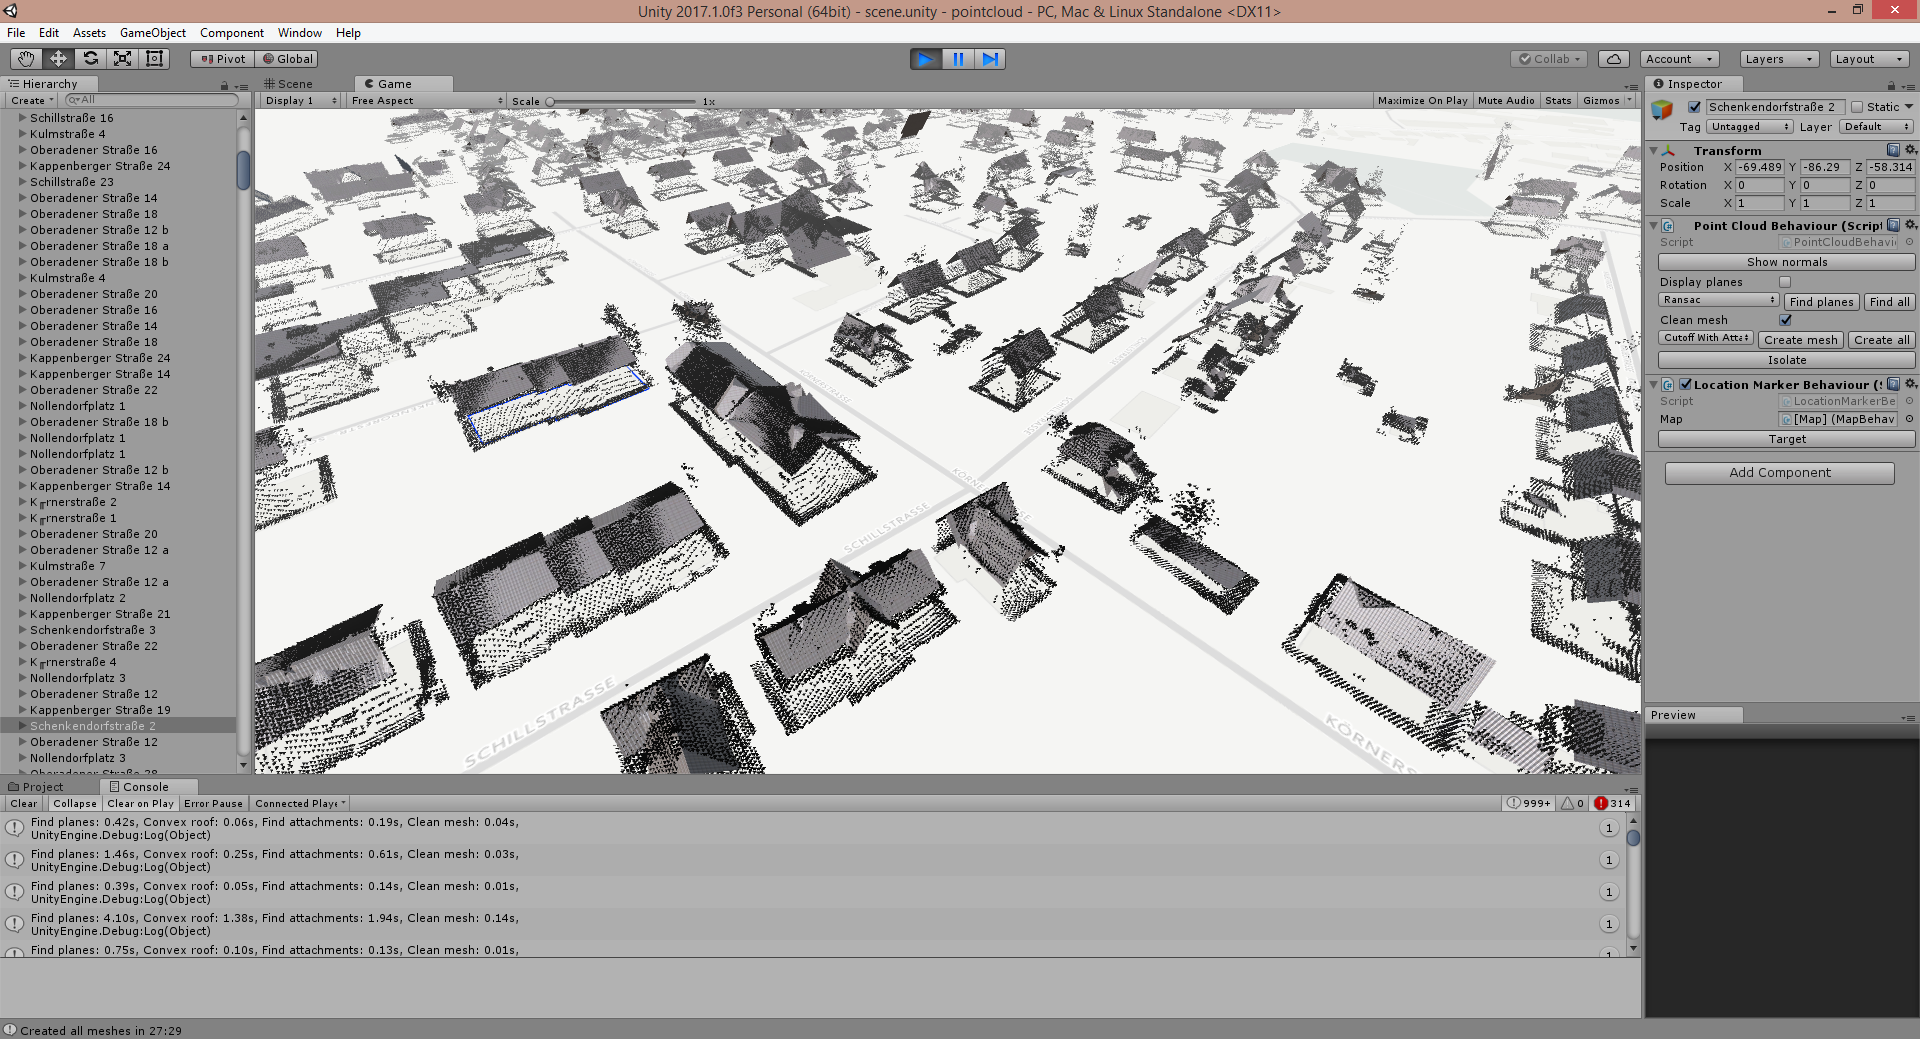 Generating 3D roof meshes from aerial LIDAR data | Marian's Blog